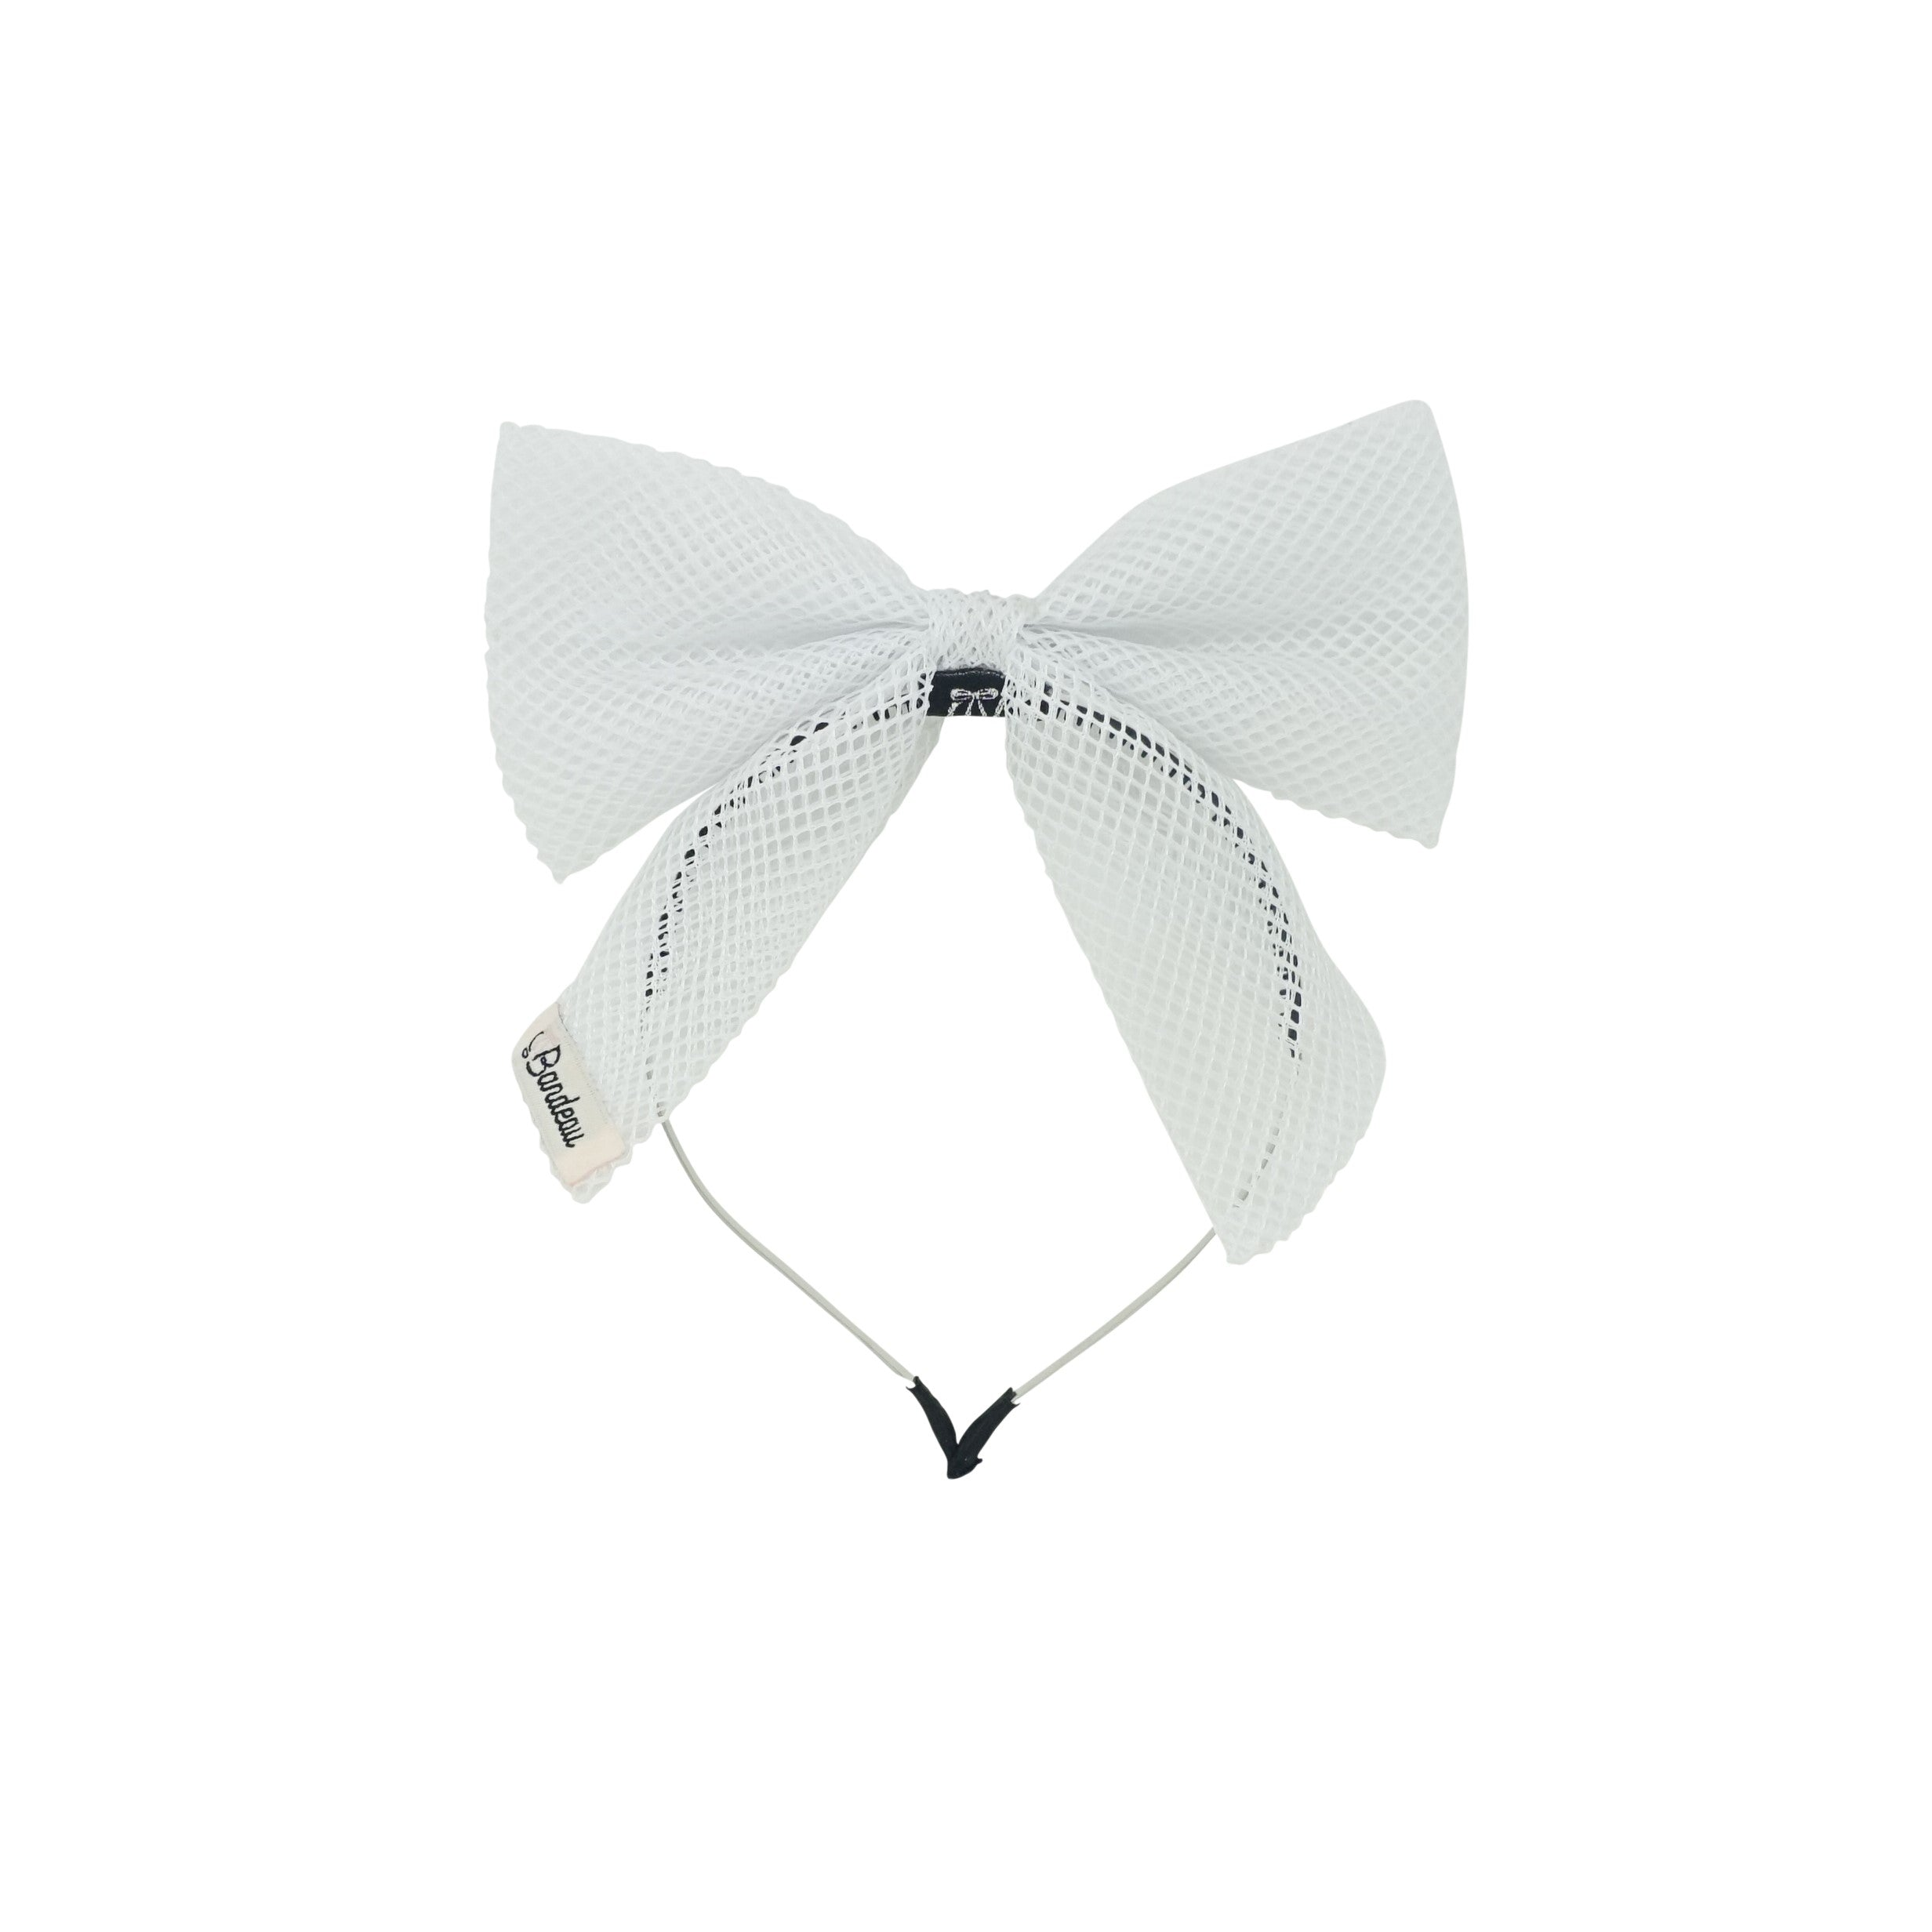 Netting Bow Headband